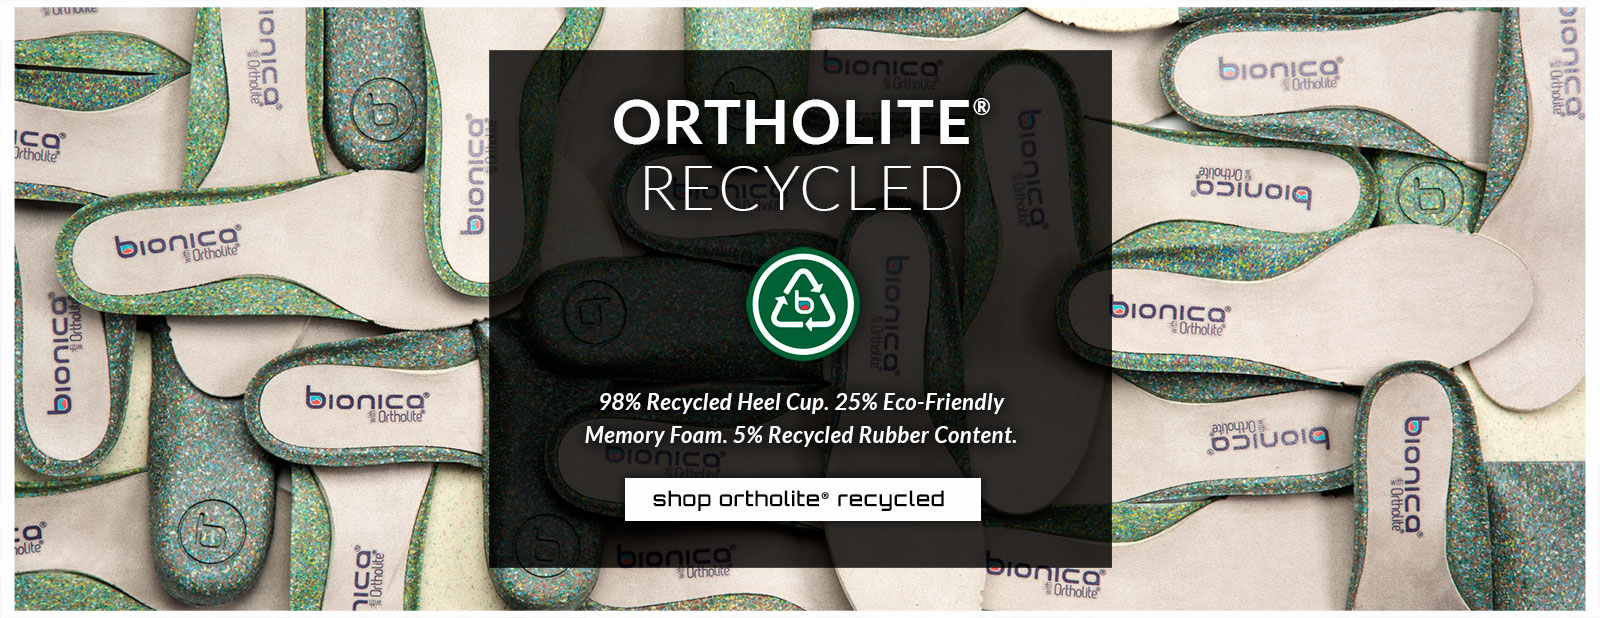 Ortholite Recycled. 98% Recycled Heel Cup. 25% Eco-Friendly Memory Foam. 5% Recycled Rubber Content. shop ortholite® recycled.